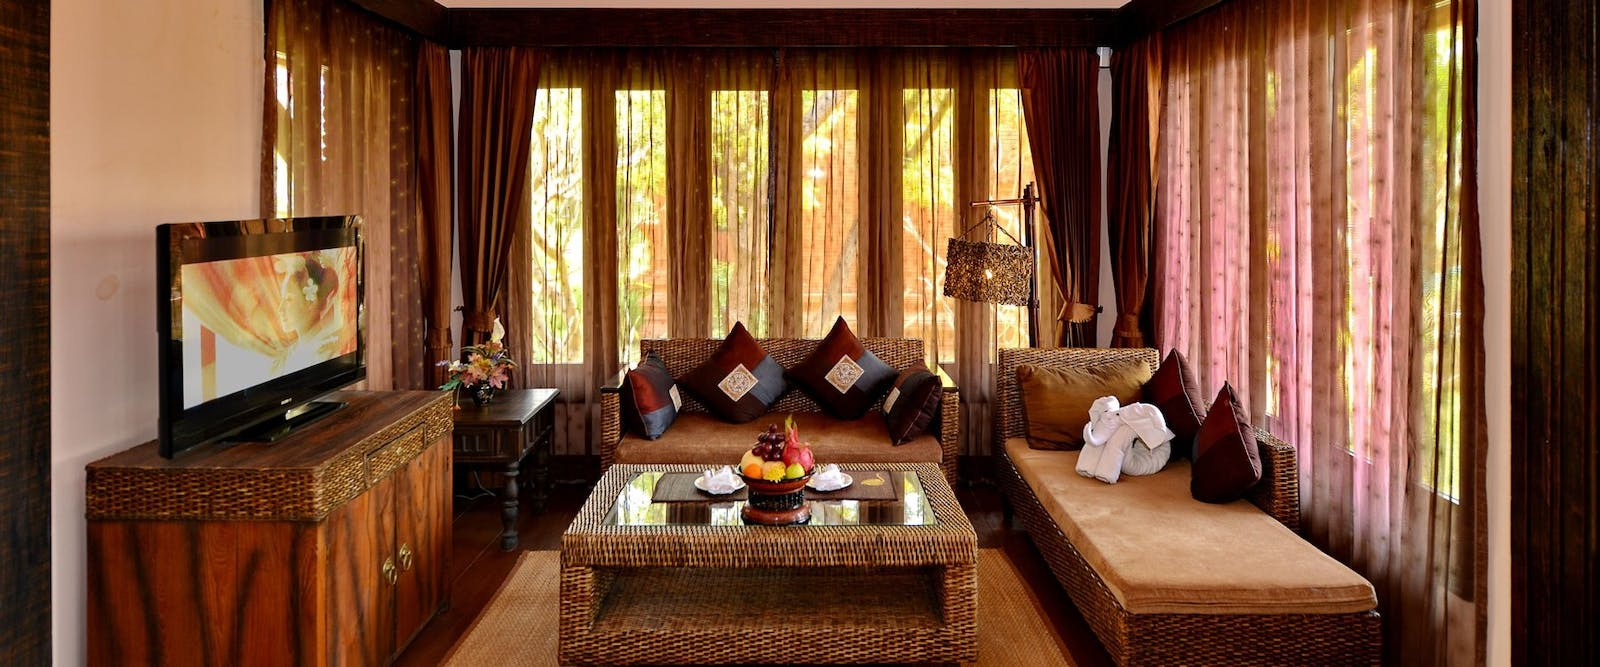 Jasmine villa living room at Aureum Palace Hotel Bagan